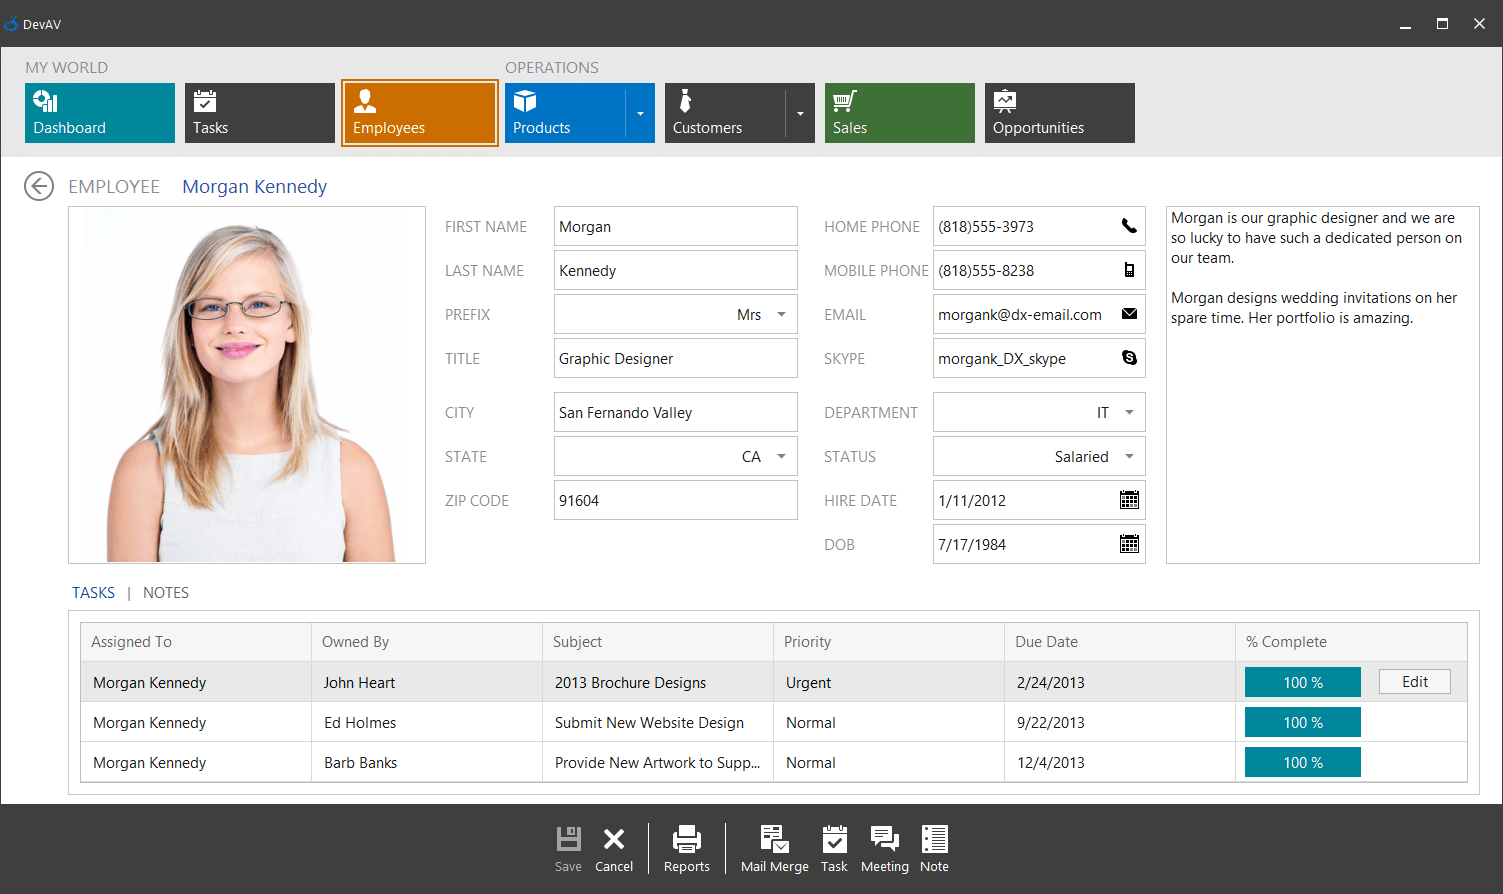 Tablet Application Built with Office-Inspired WinForms Controls